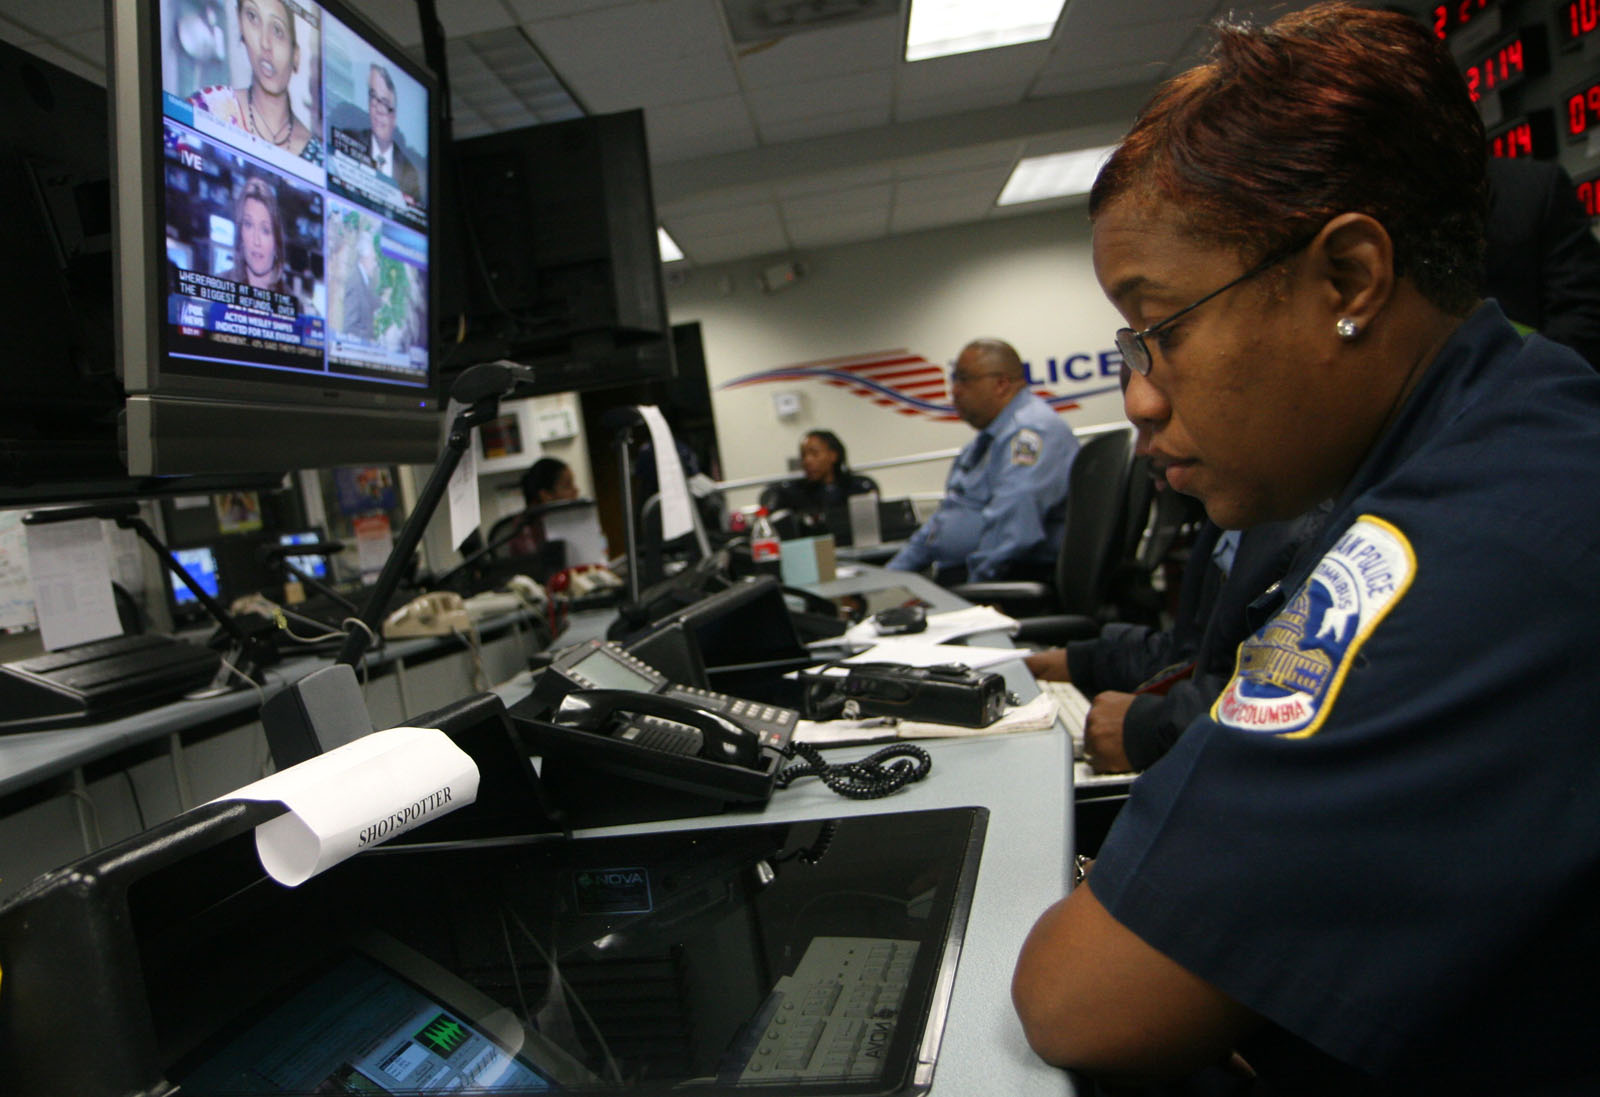 Washington, DC, police operate ShotSpotter, which uses highly sophisticated microphones to detect the sound of gunshots and send a signal to dispatchers.